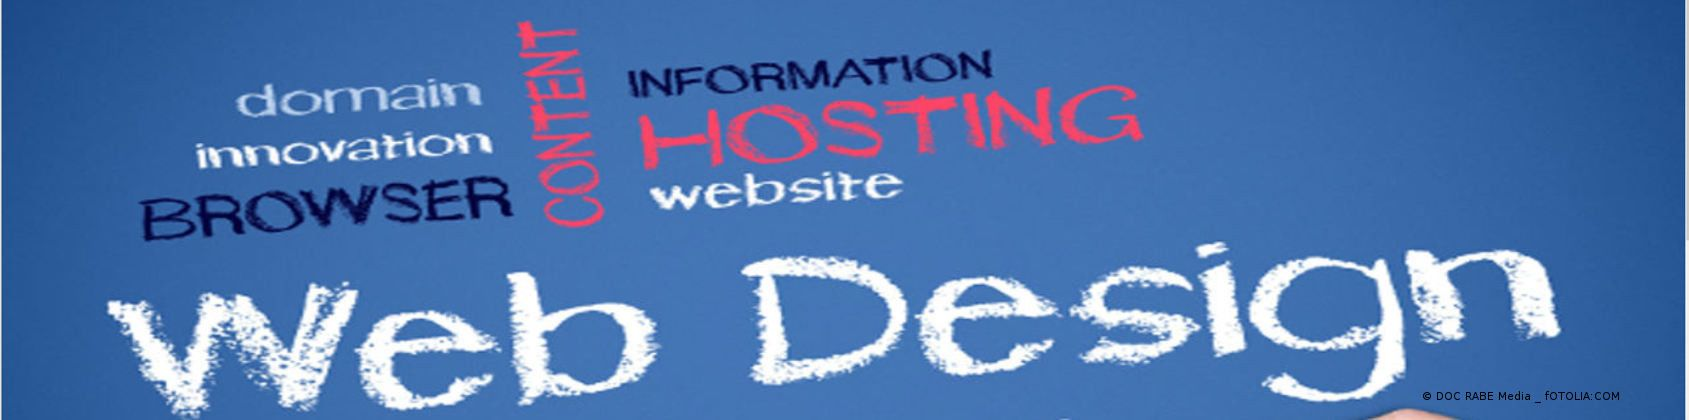 Angebote Webdesign & Internetservice